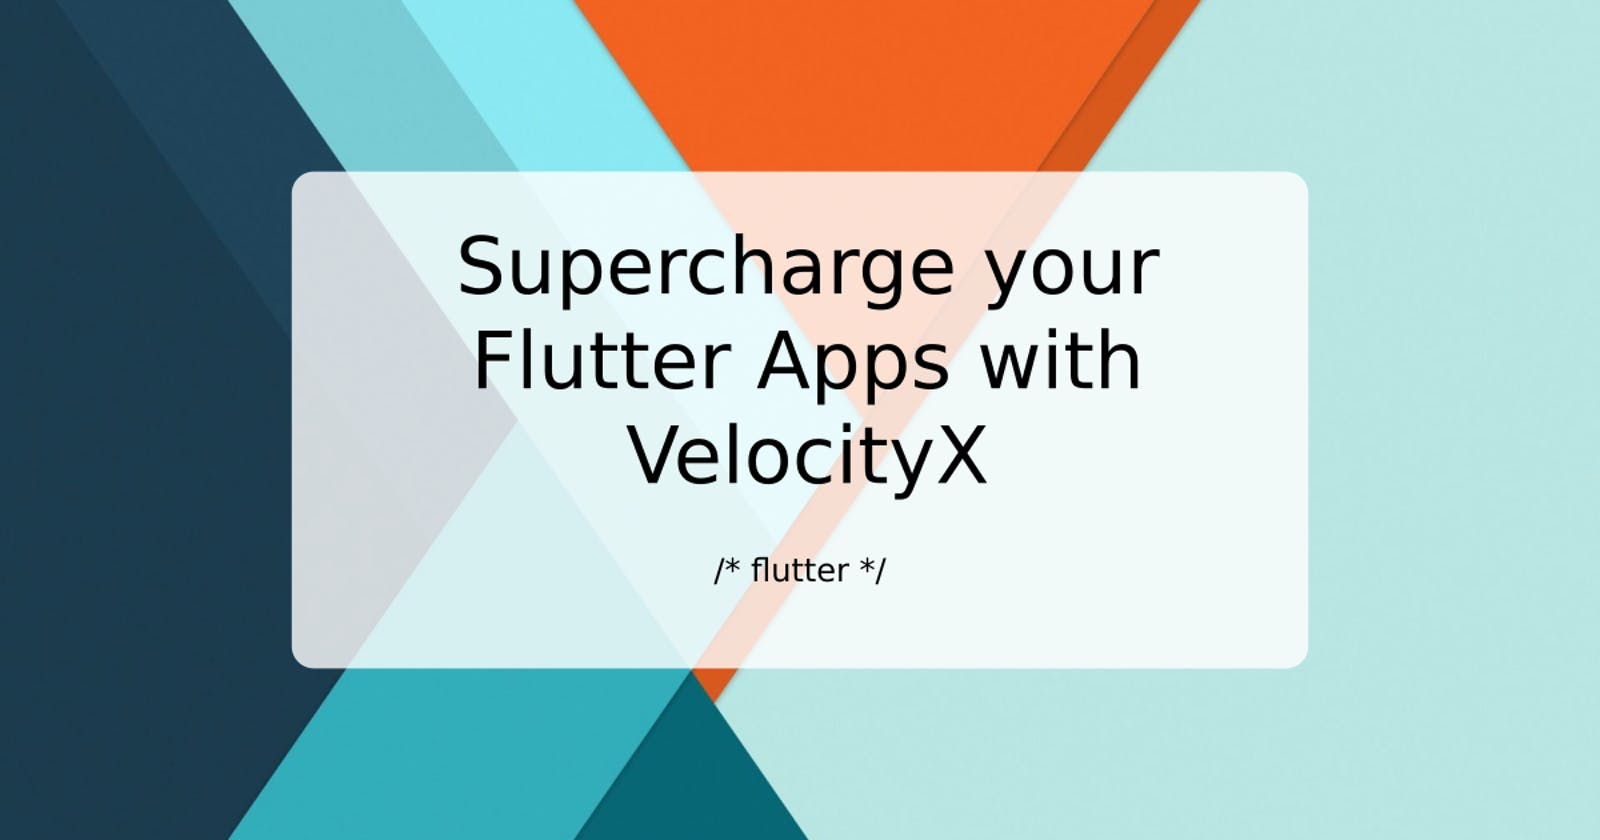 Supercharge your Flutter Apps with VelocityX